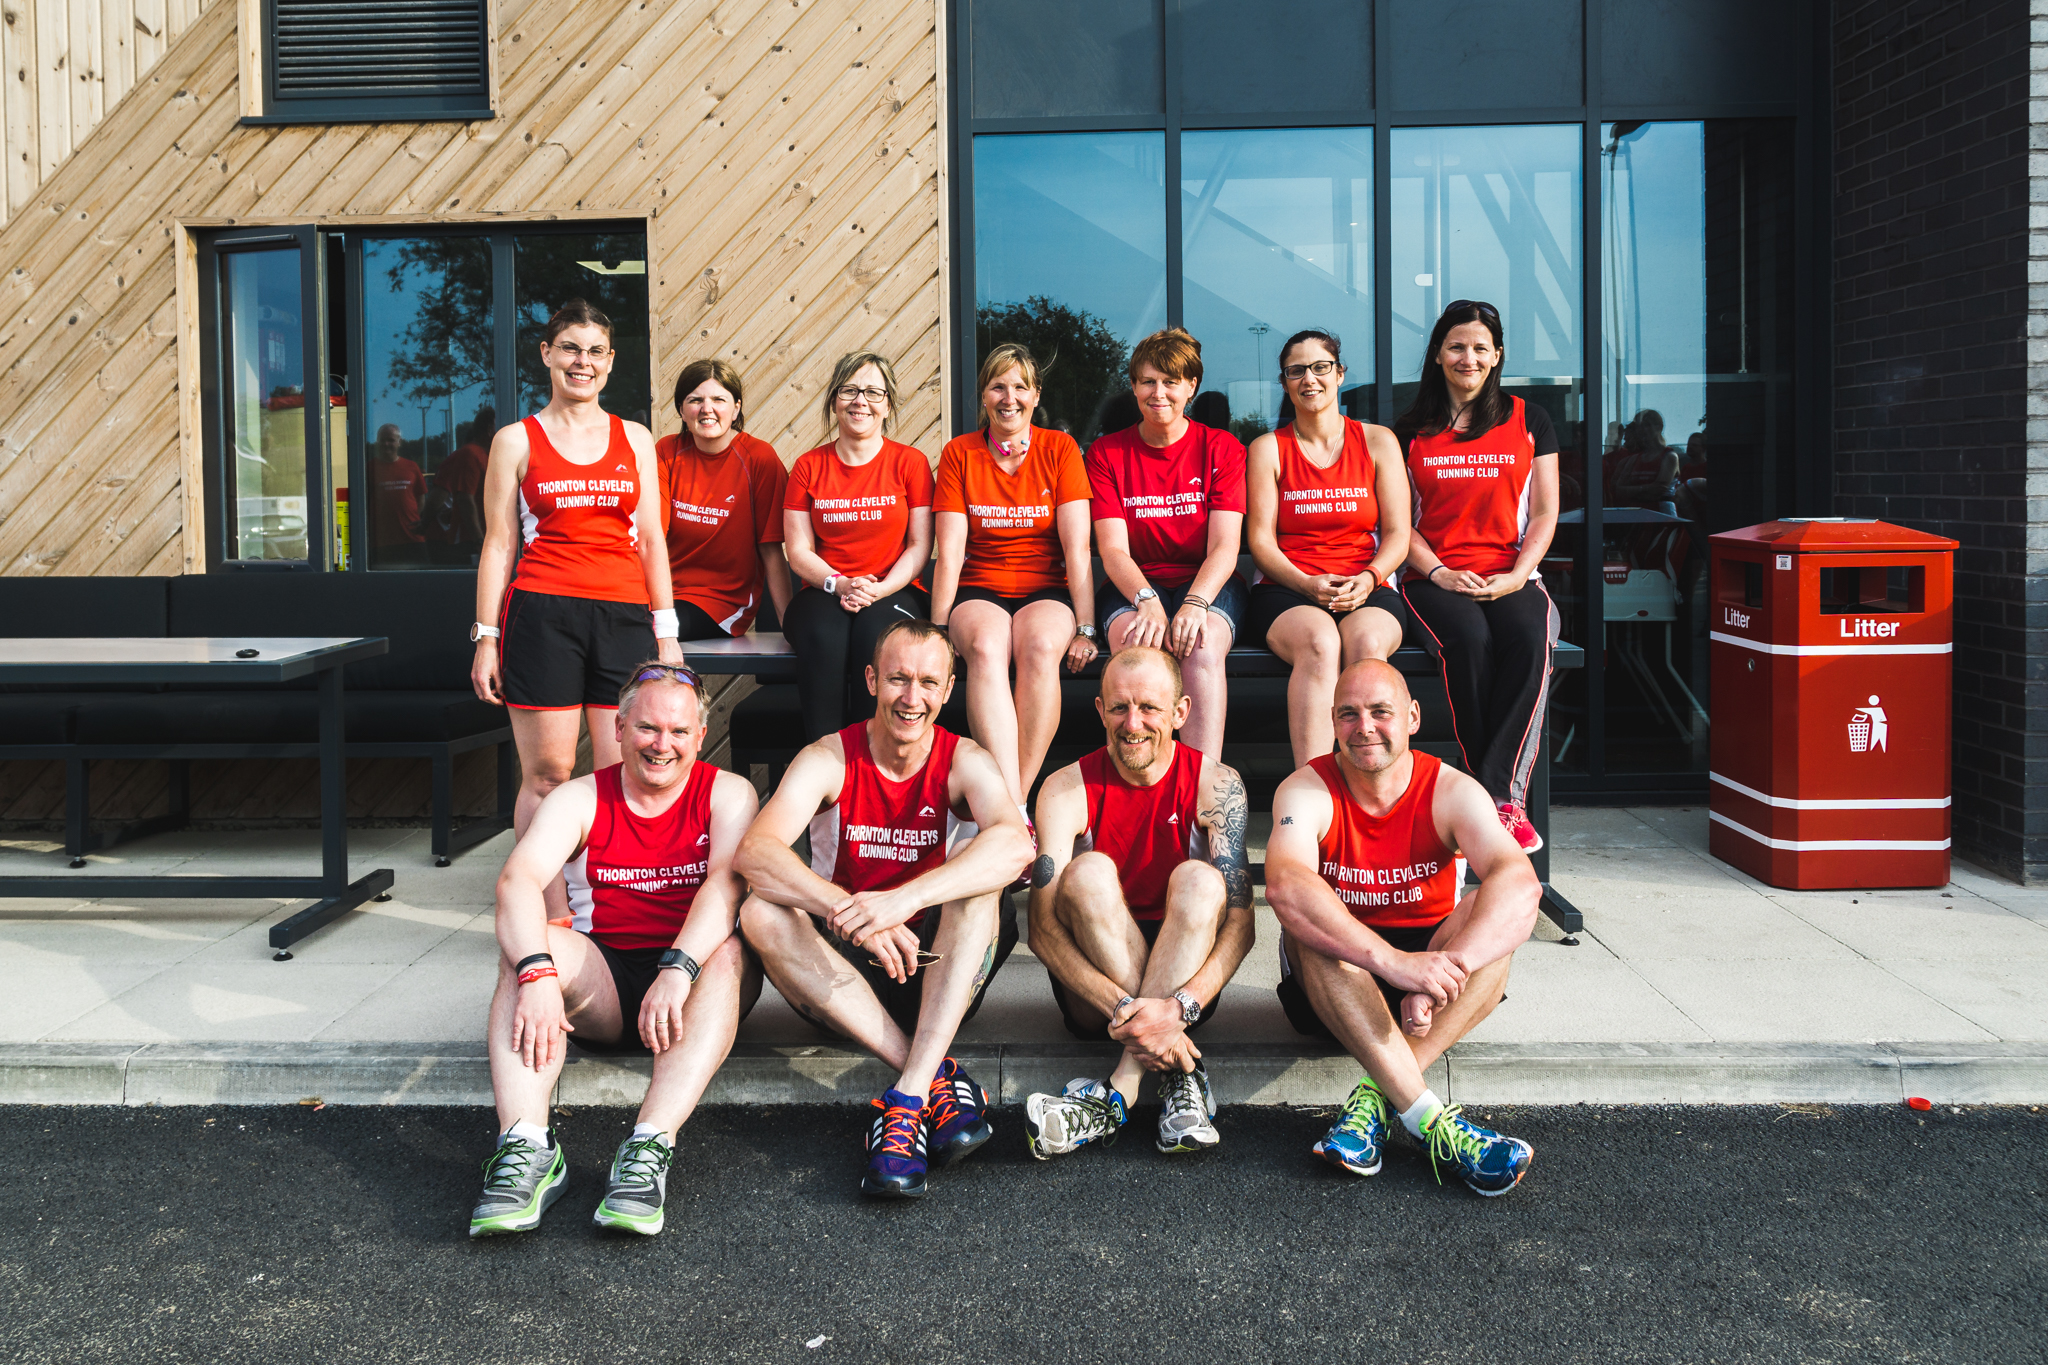 16-06-07 Team photo for Cleveleys and Thornton running club-45.jpg